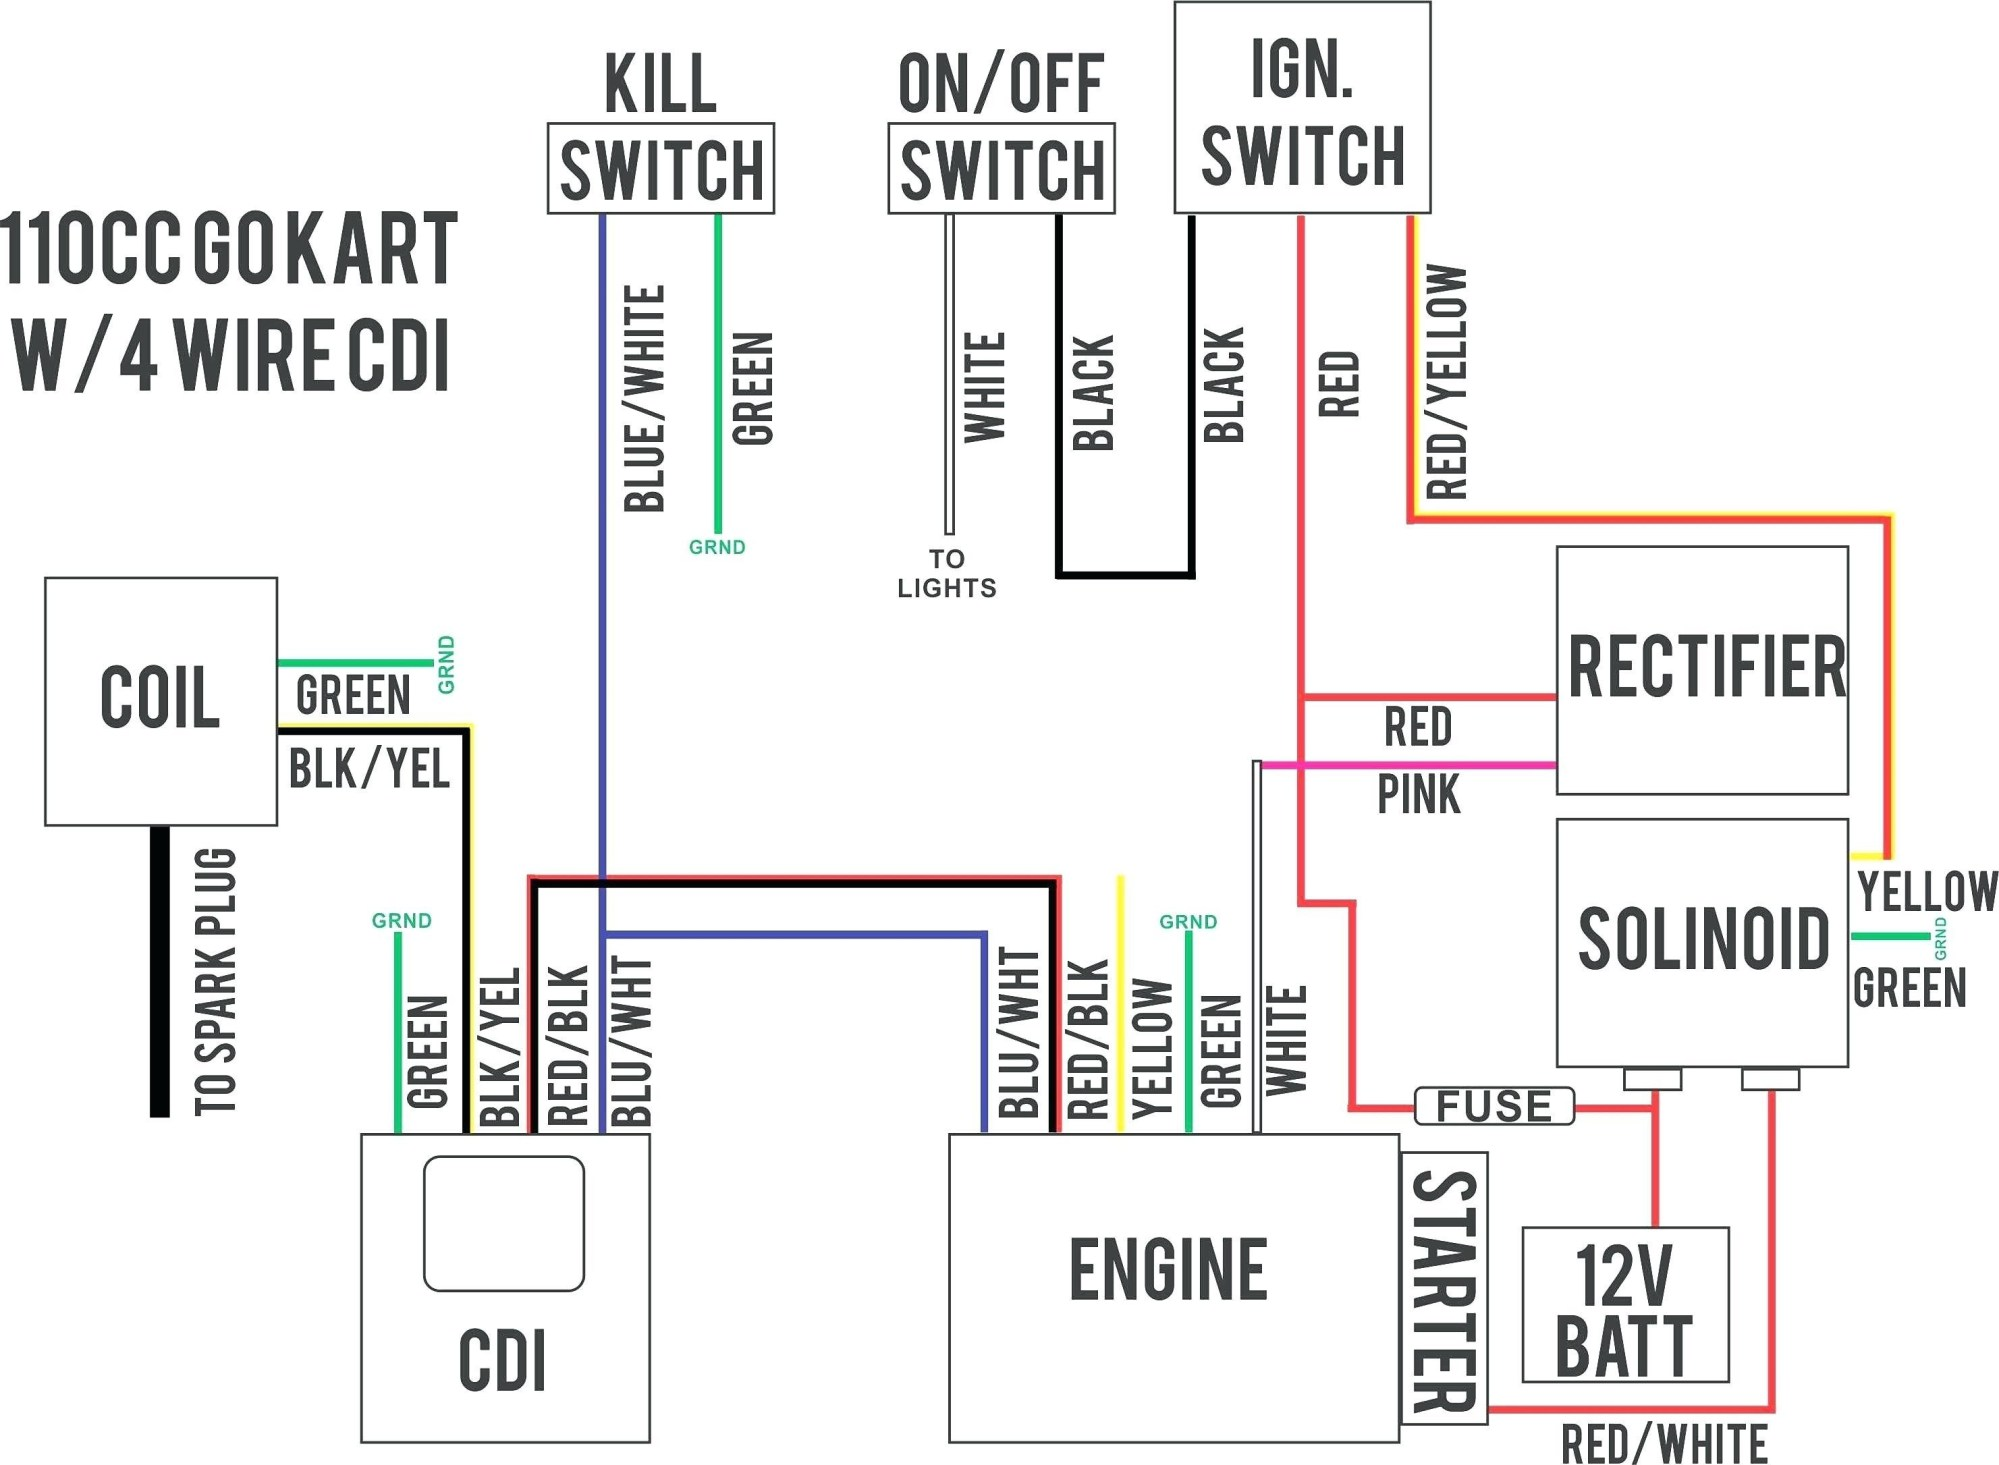 hight resolution of wiring diagram of ats wiring diagram blog wiring diagram for ats panel wiring diagram ats and